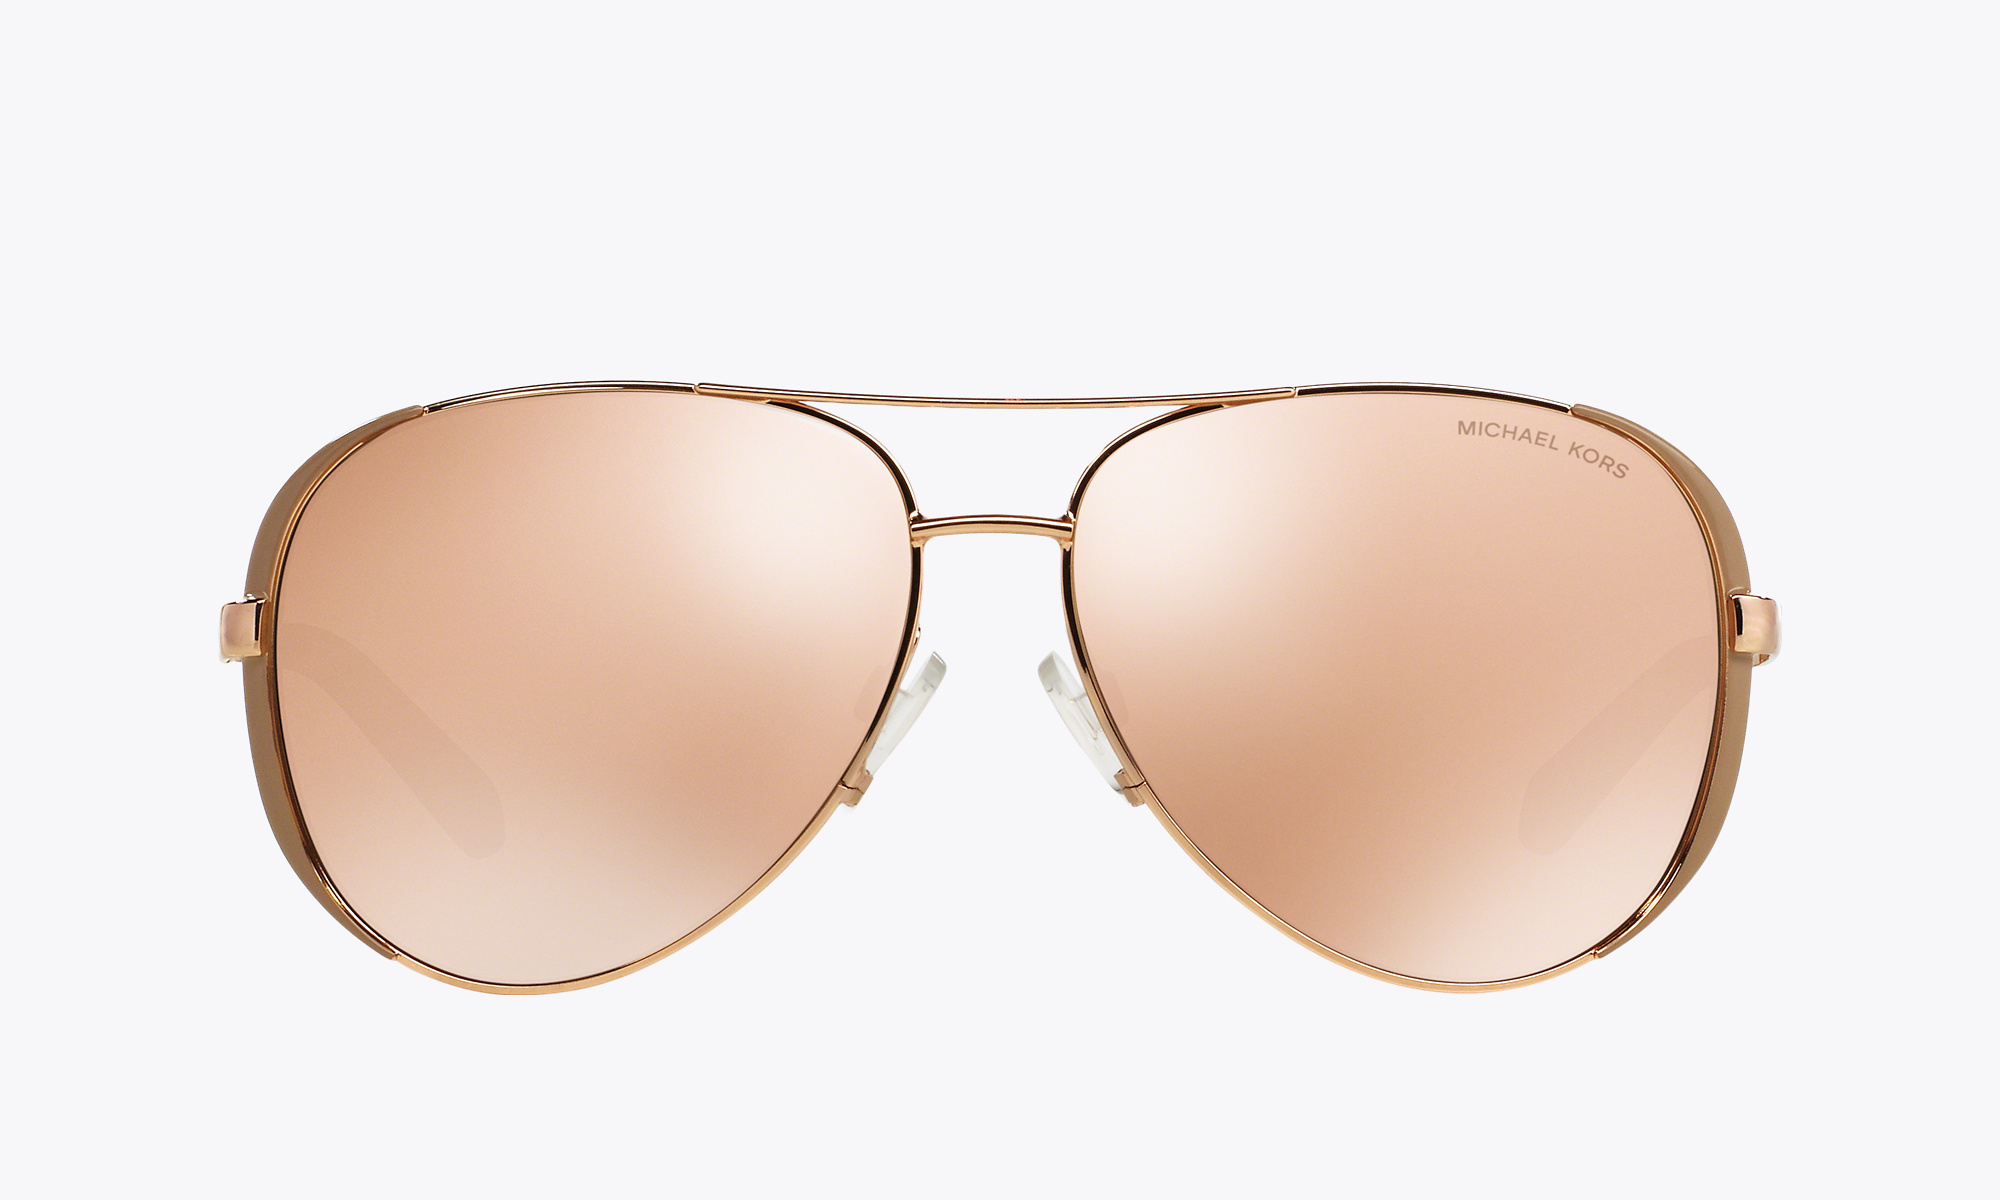 Image of MICHAEL KORS CHELSEA color Pink